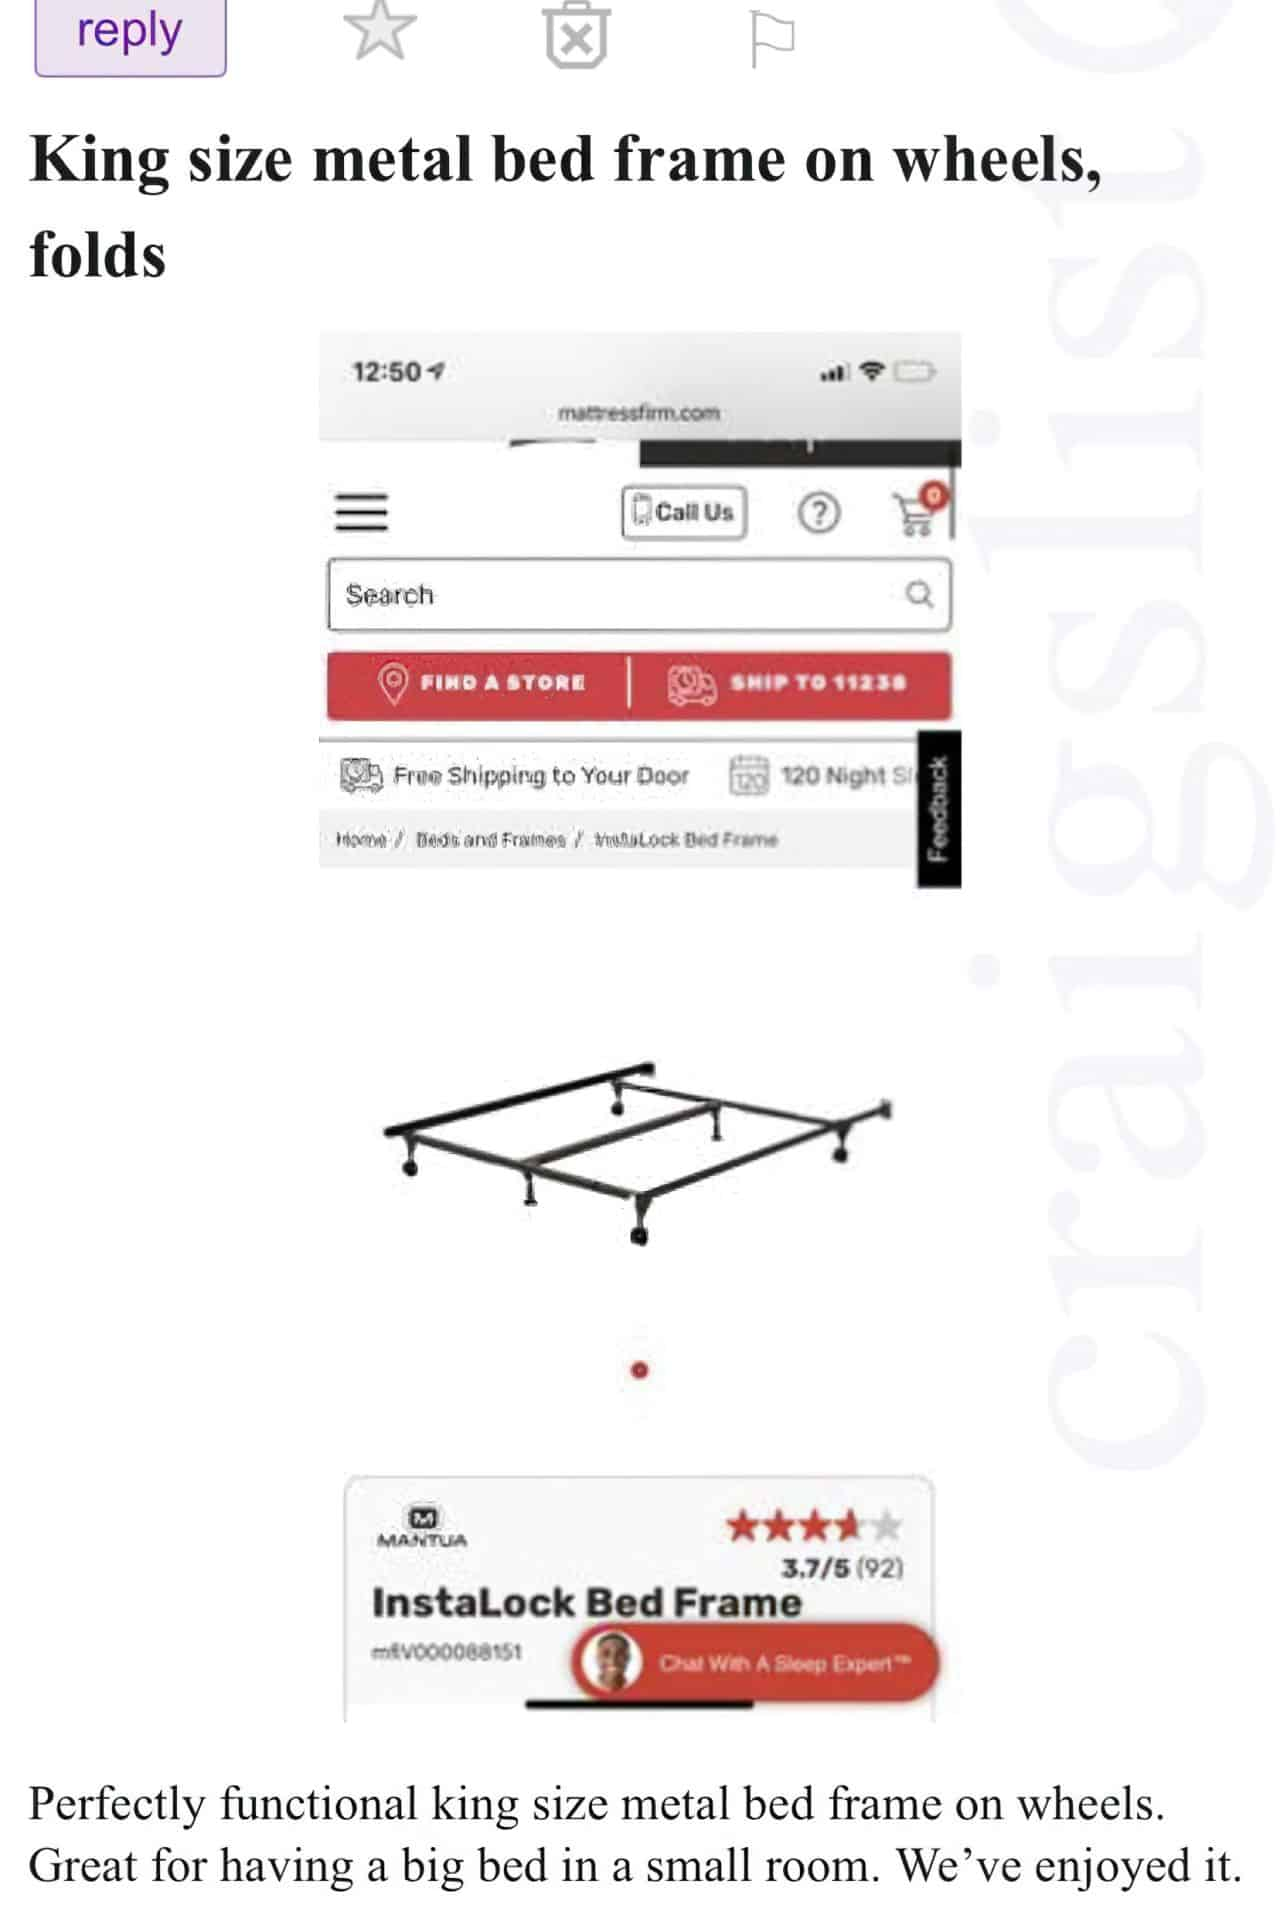 king size metal bed frame enlarged